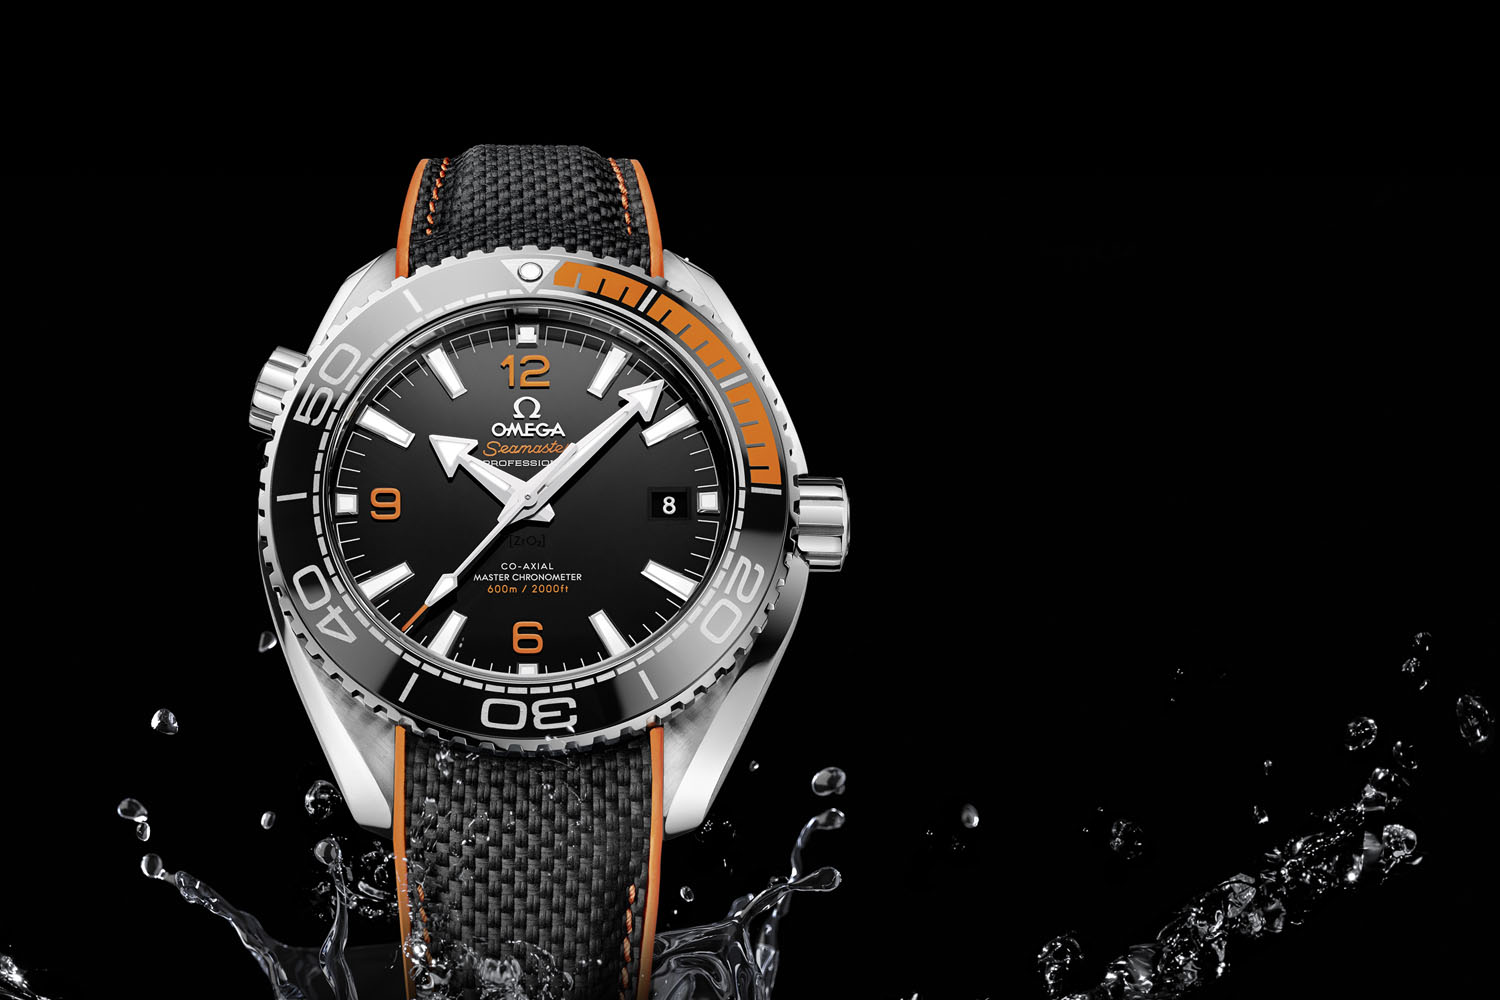 Omega Seamaster Planet Ocean 43.5mm Automatic - Black and Orange - Master Chronometer